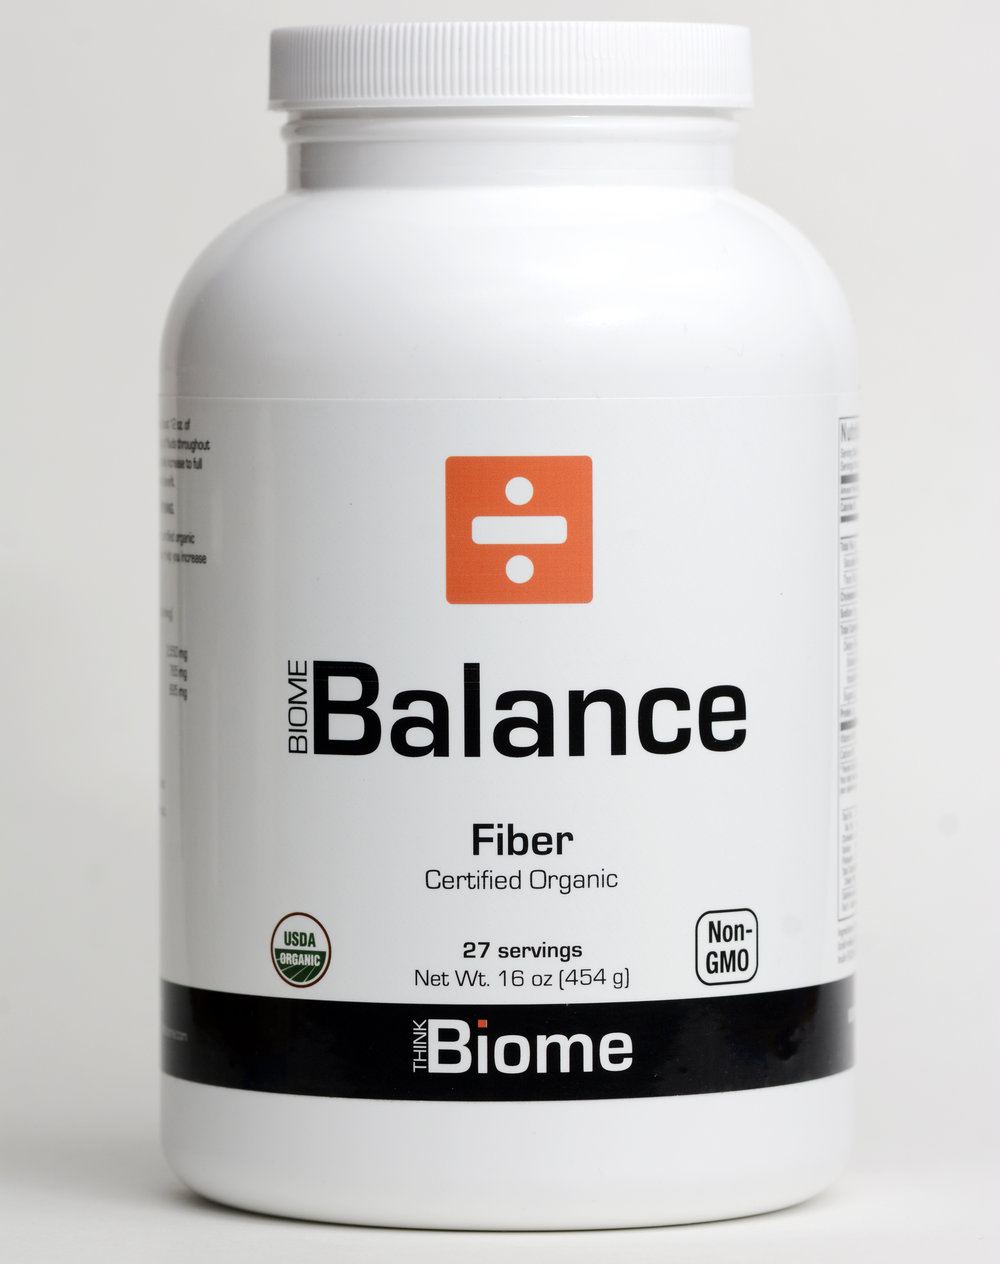 Biome Balance complete prebiotic dietary fiber - PROMOTES GUT MICROBIOME AND OVERALL HEALTH by encouraging the growth of